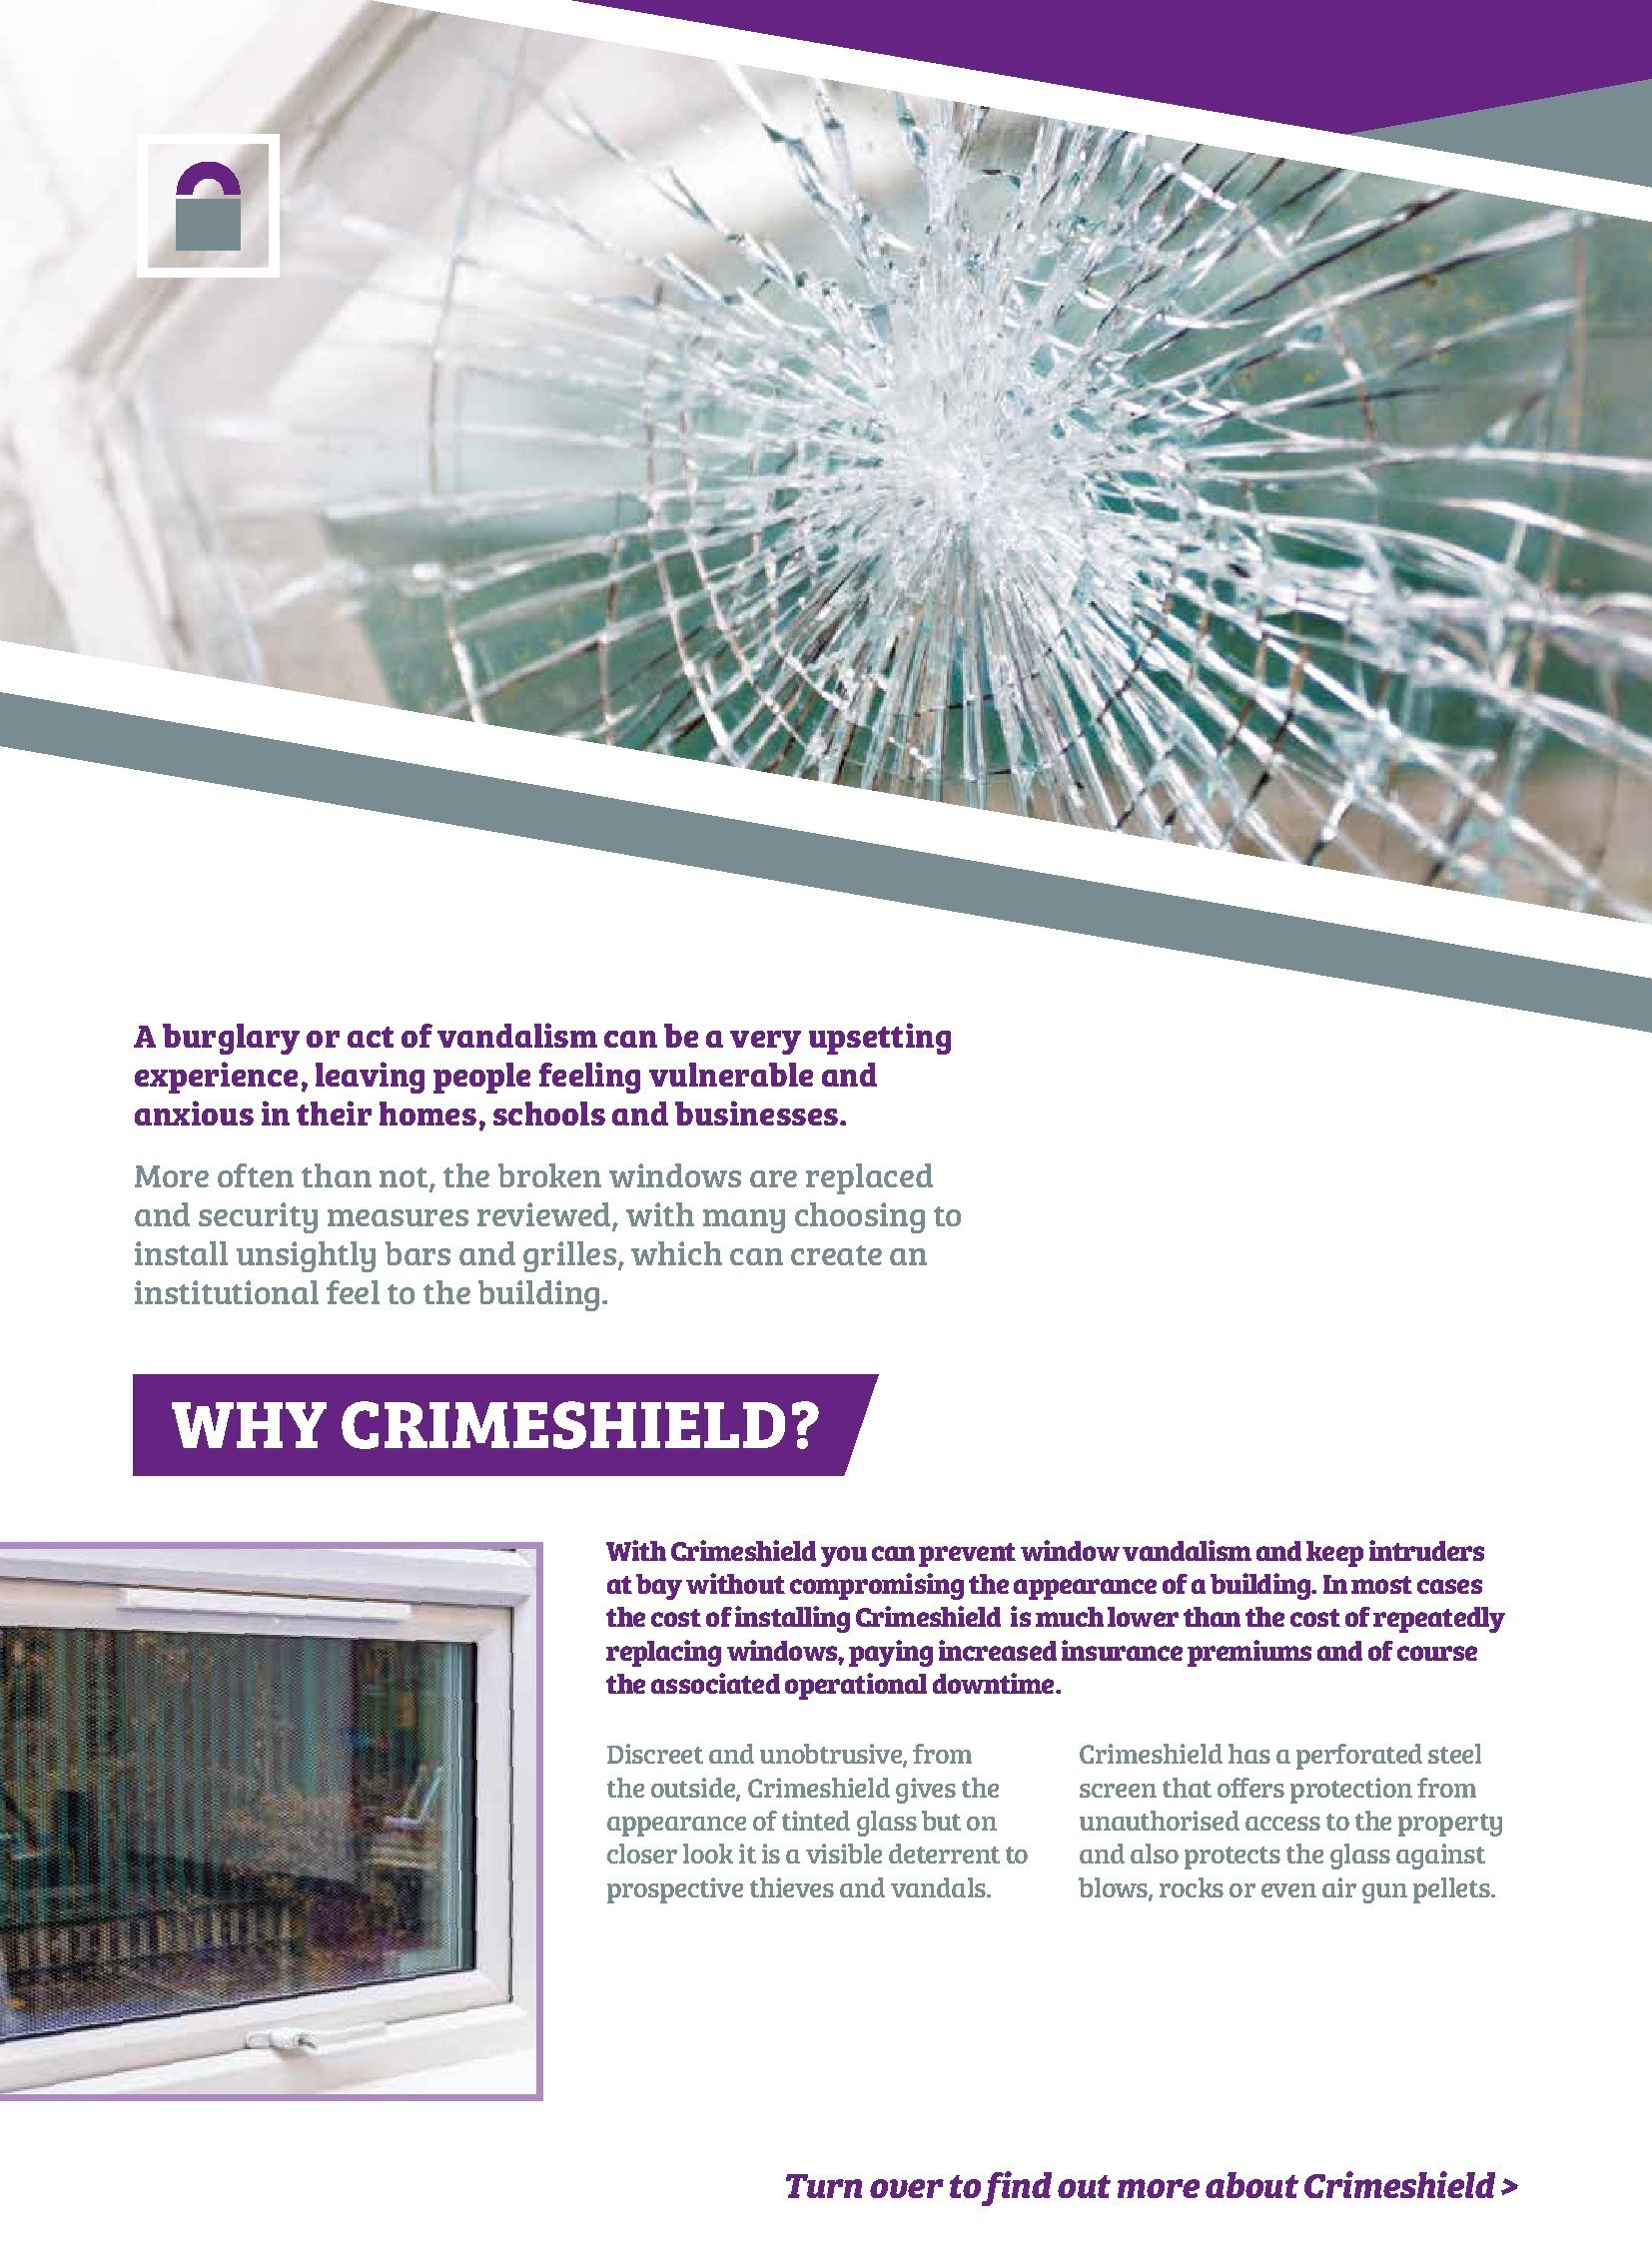 Crimeshield_Brochure_web_1__002